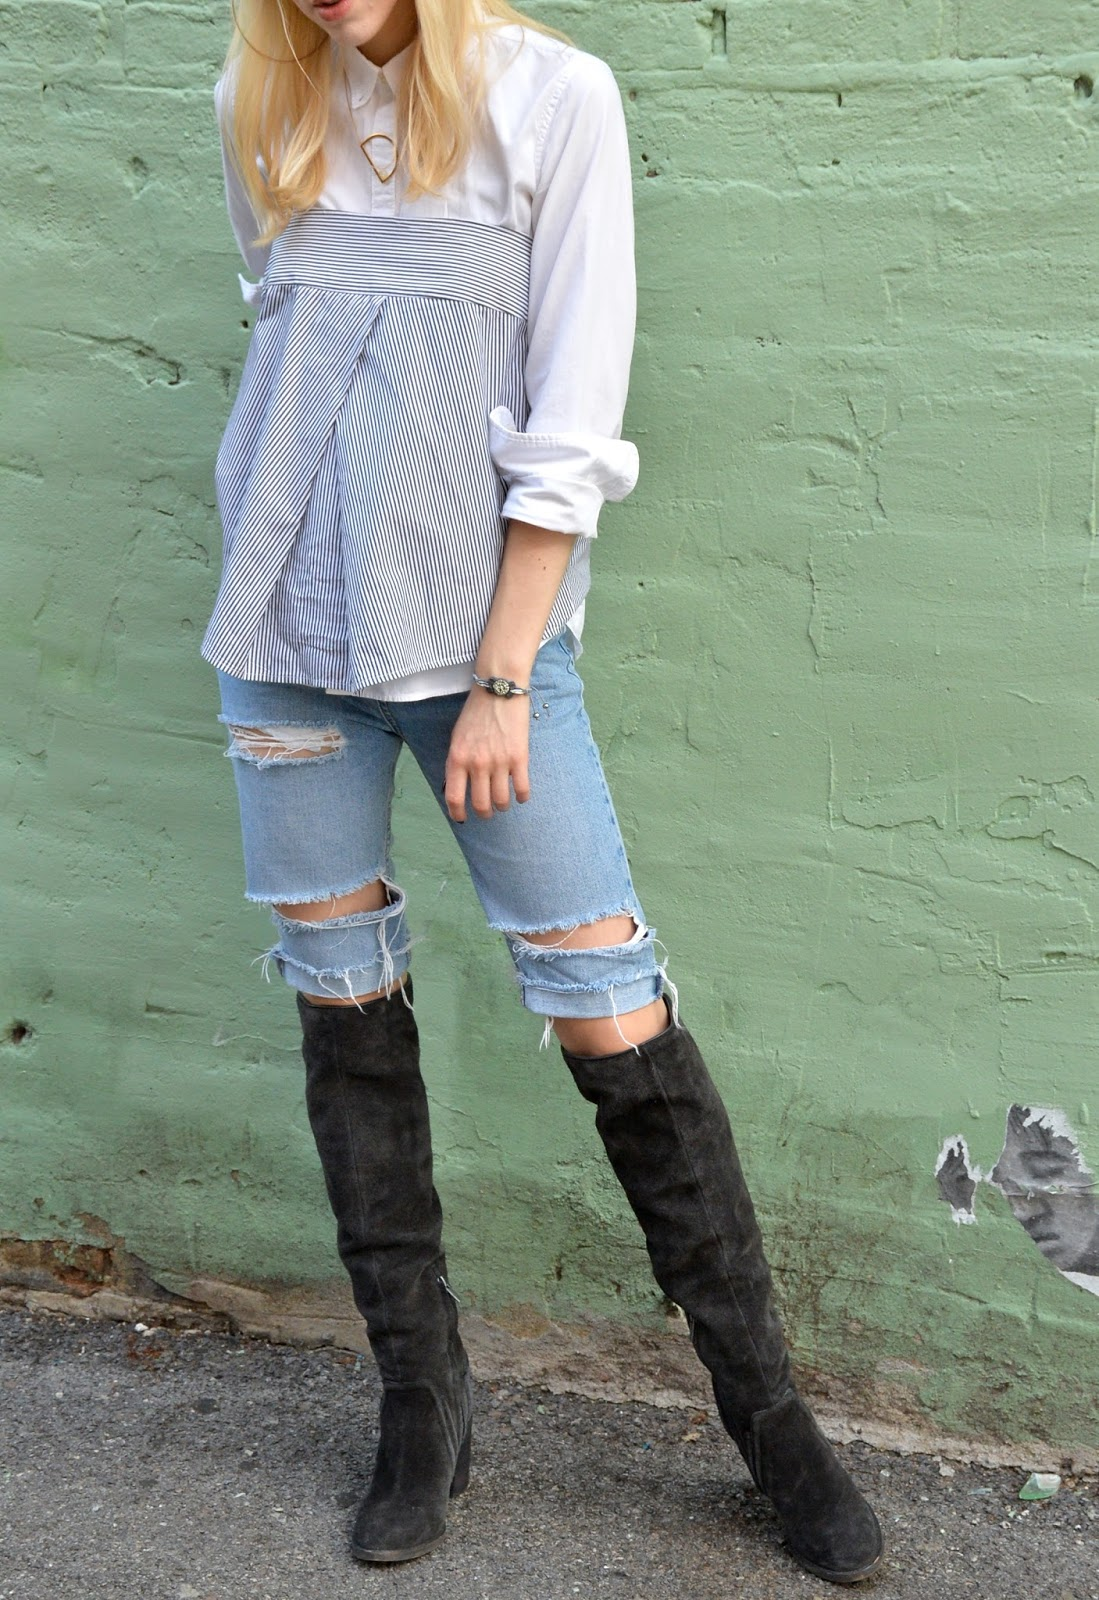 Posing in a layered look wearing over the knee boots